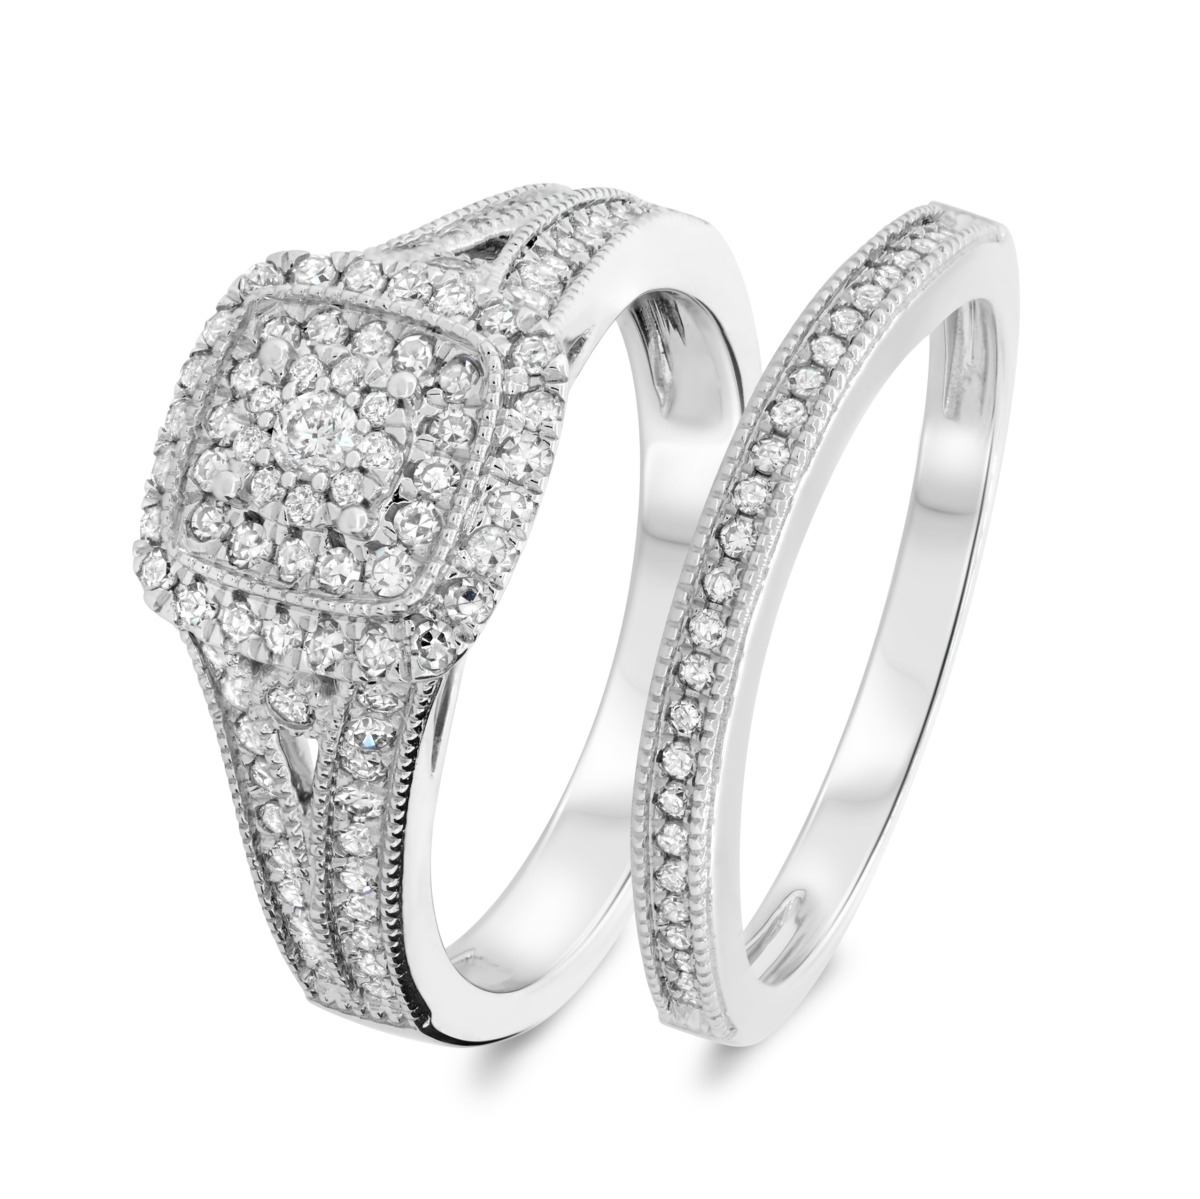 2/3 CT. T.W. Diamond Matching Bridal Ring Set 14K White Gold